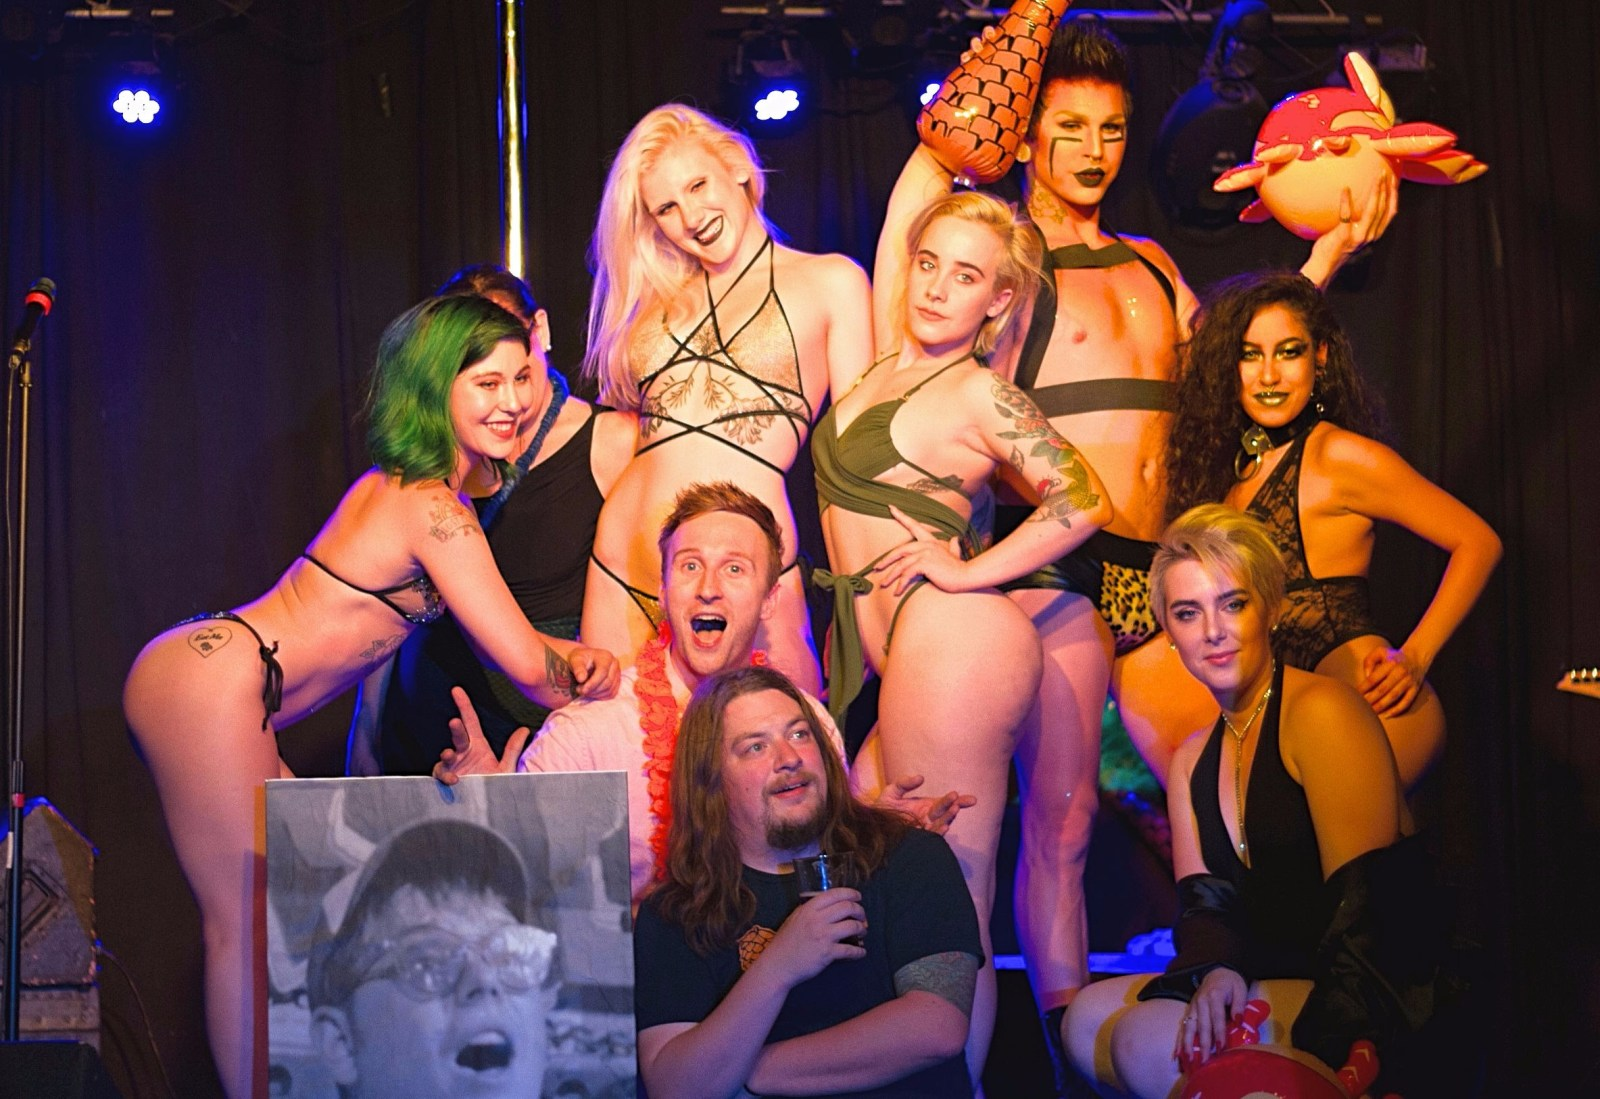 """Who's the Ross?"" whos the ross Aaron comedian comedy Portland PDX FSO ""for strippers only"" strippers dancers exotic dancer live entertainment comedy humor funny improv sketch host talk show Dante's babes"